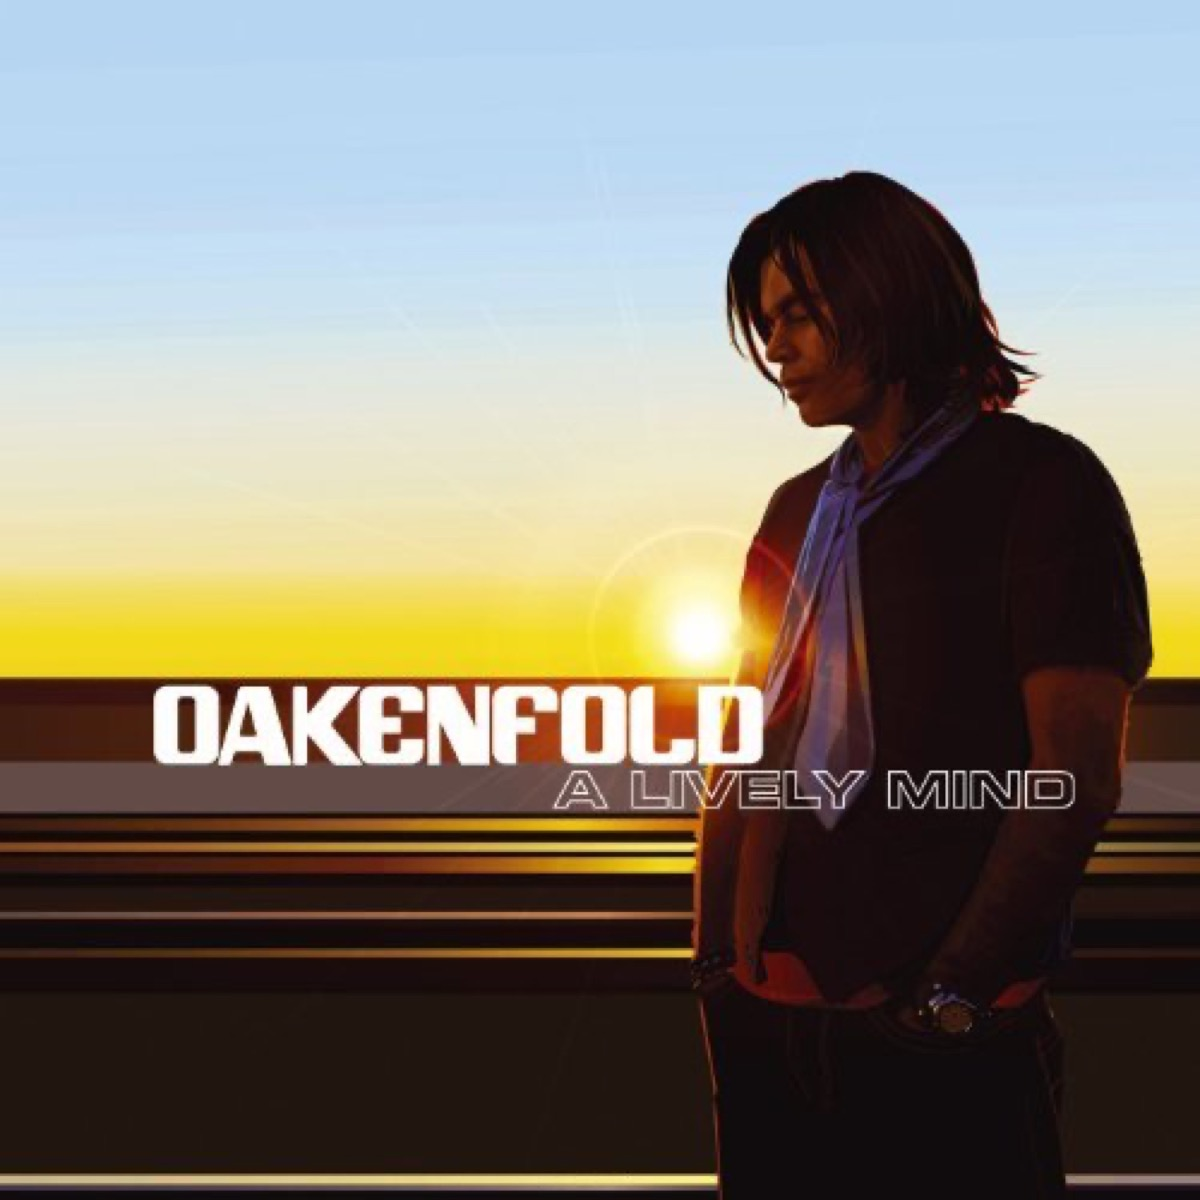 """The album cover for """"Lively Mind"""" by Paul Oakenfold"""